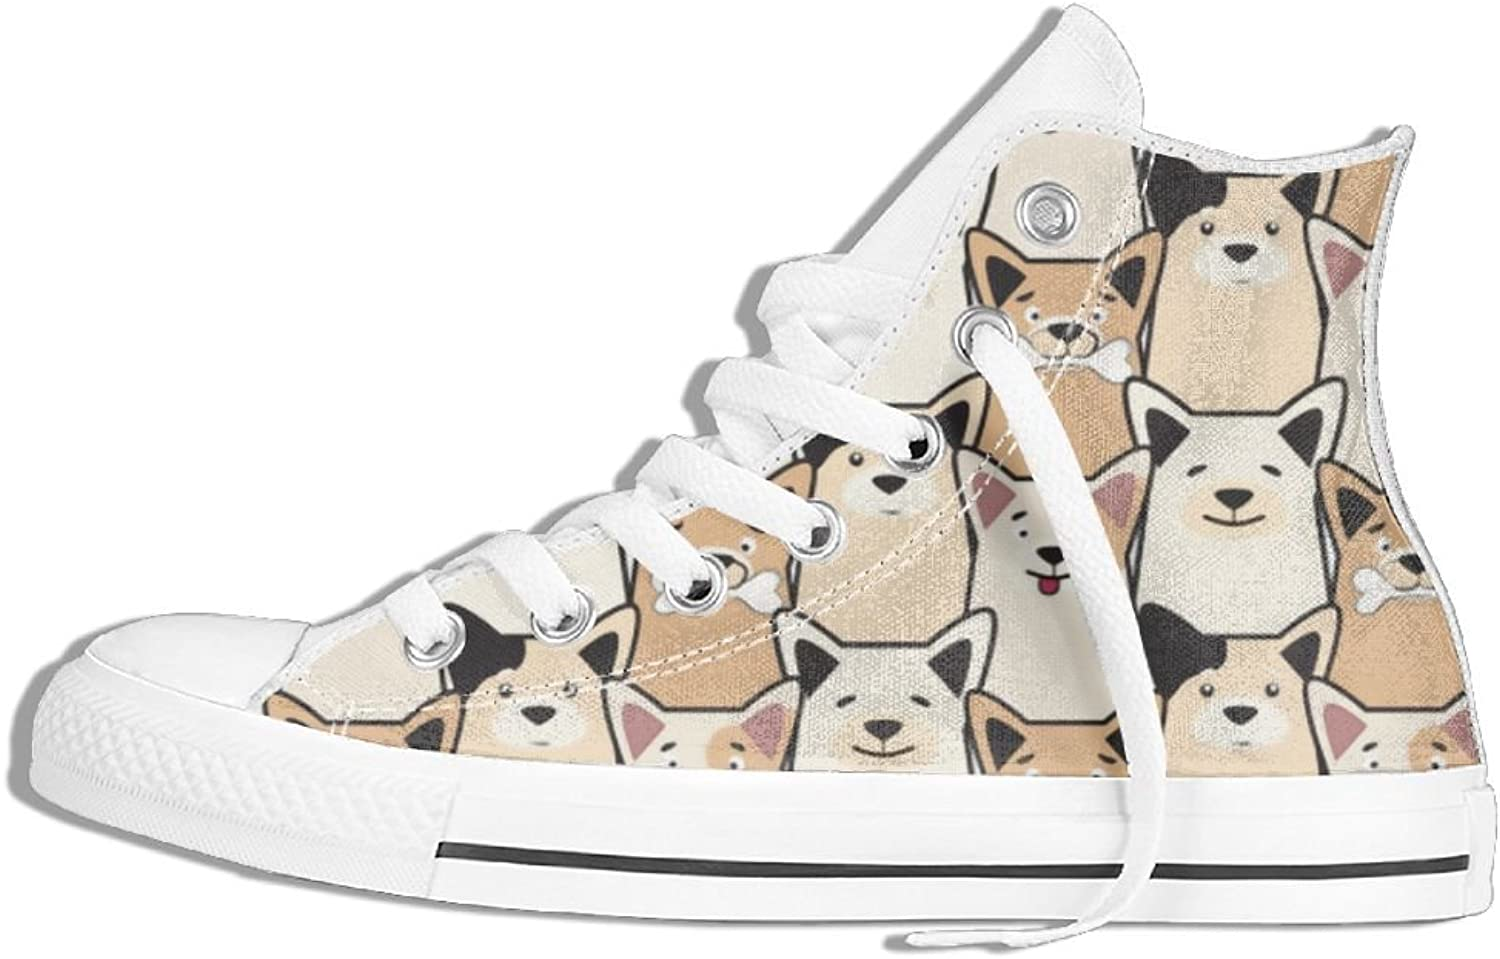 Womens Hi-Top Canvas Sneakers Cute Dog Lace Up Anti-slip Walking Trainers shoes